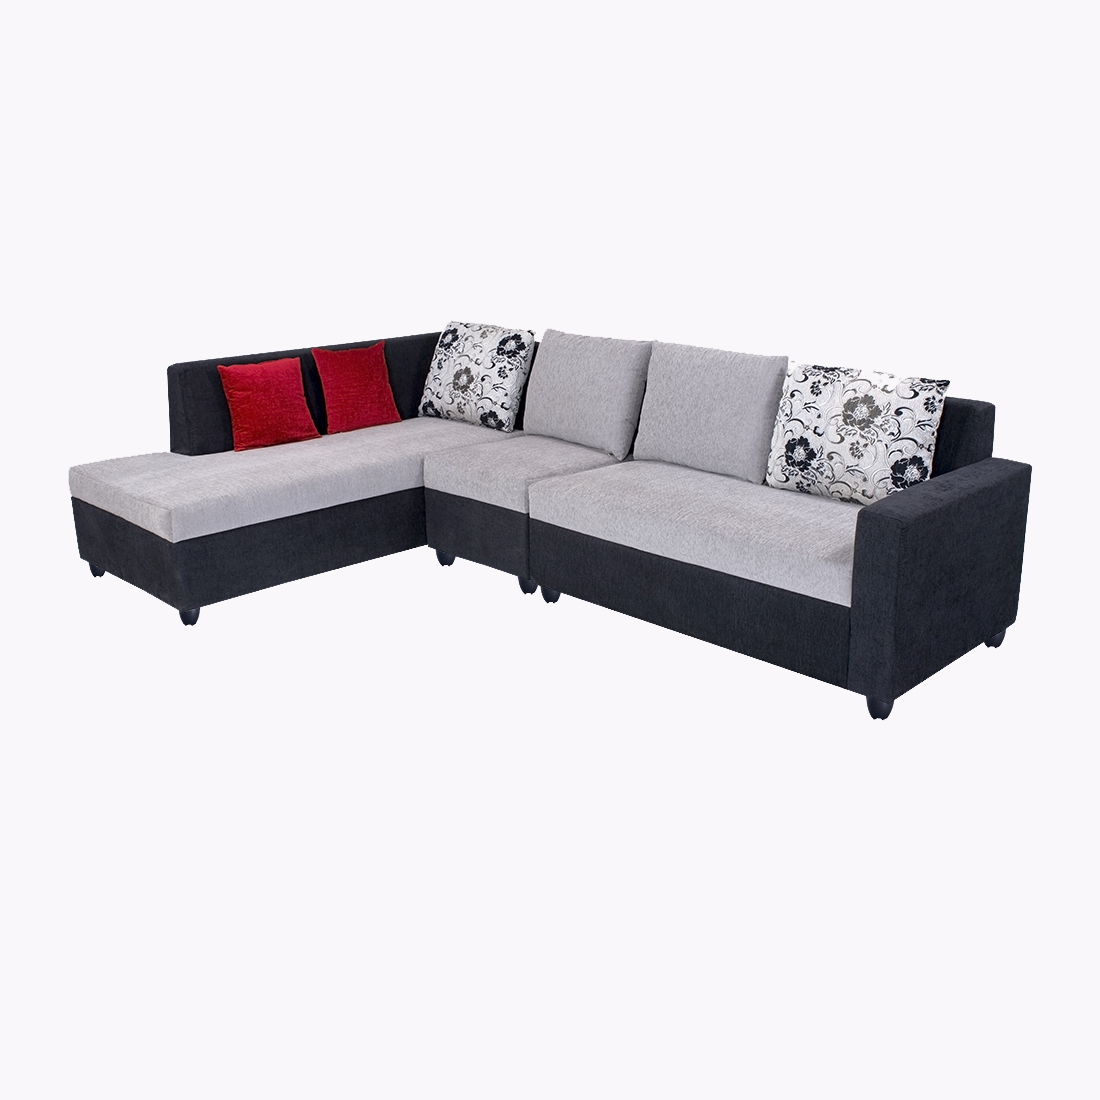 Sofa L Images Bharat Lifestyle Nano L Shape Fabric Sofa Set Black Grey 2 1 D Left Facing